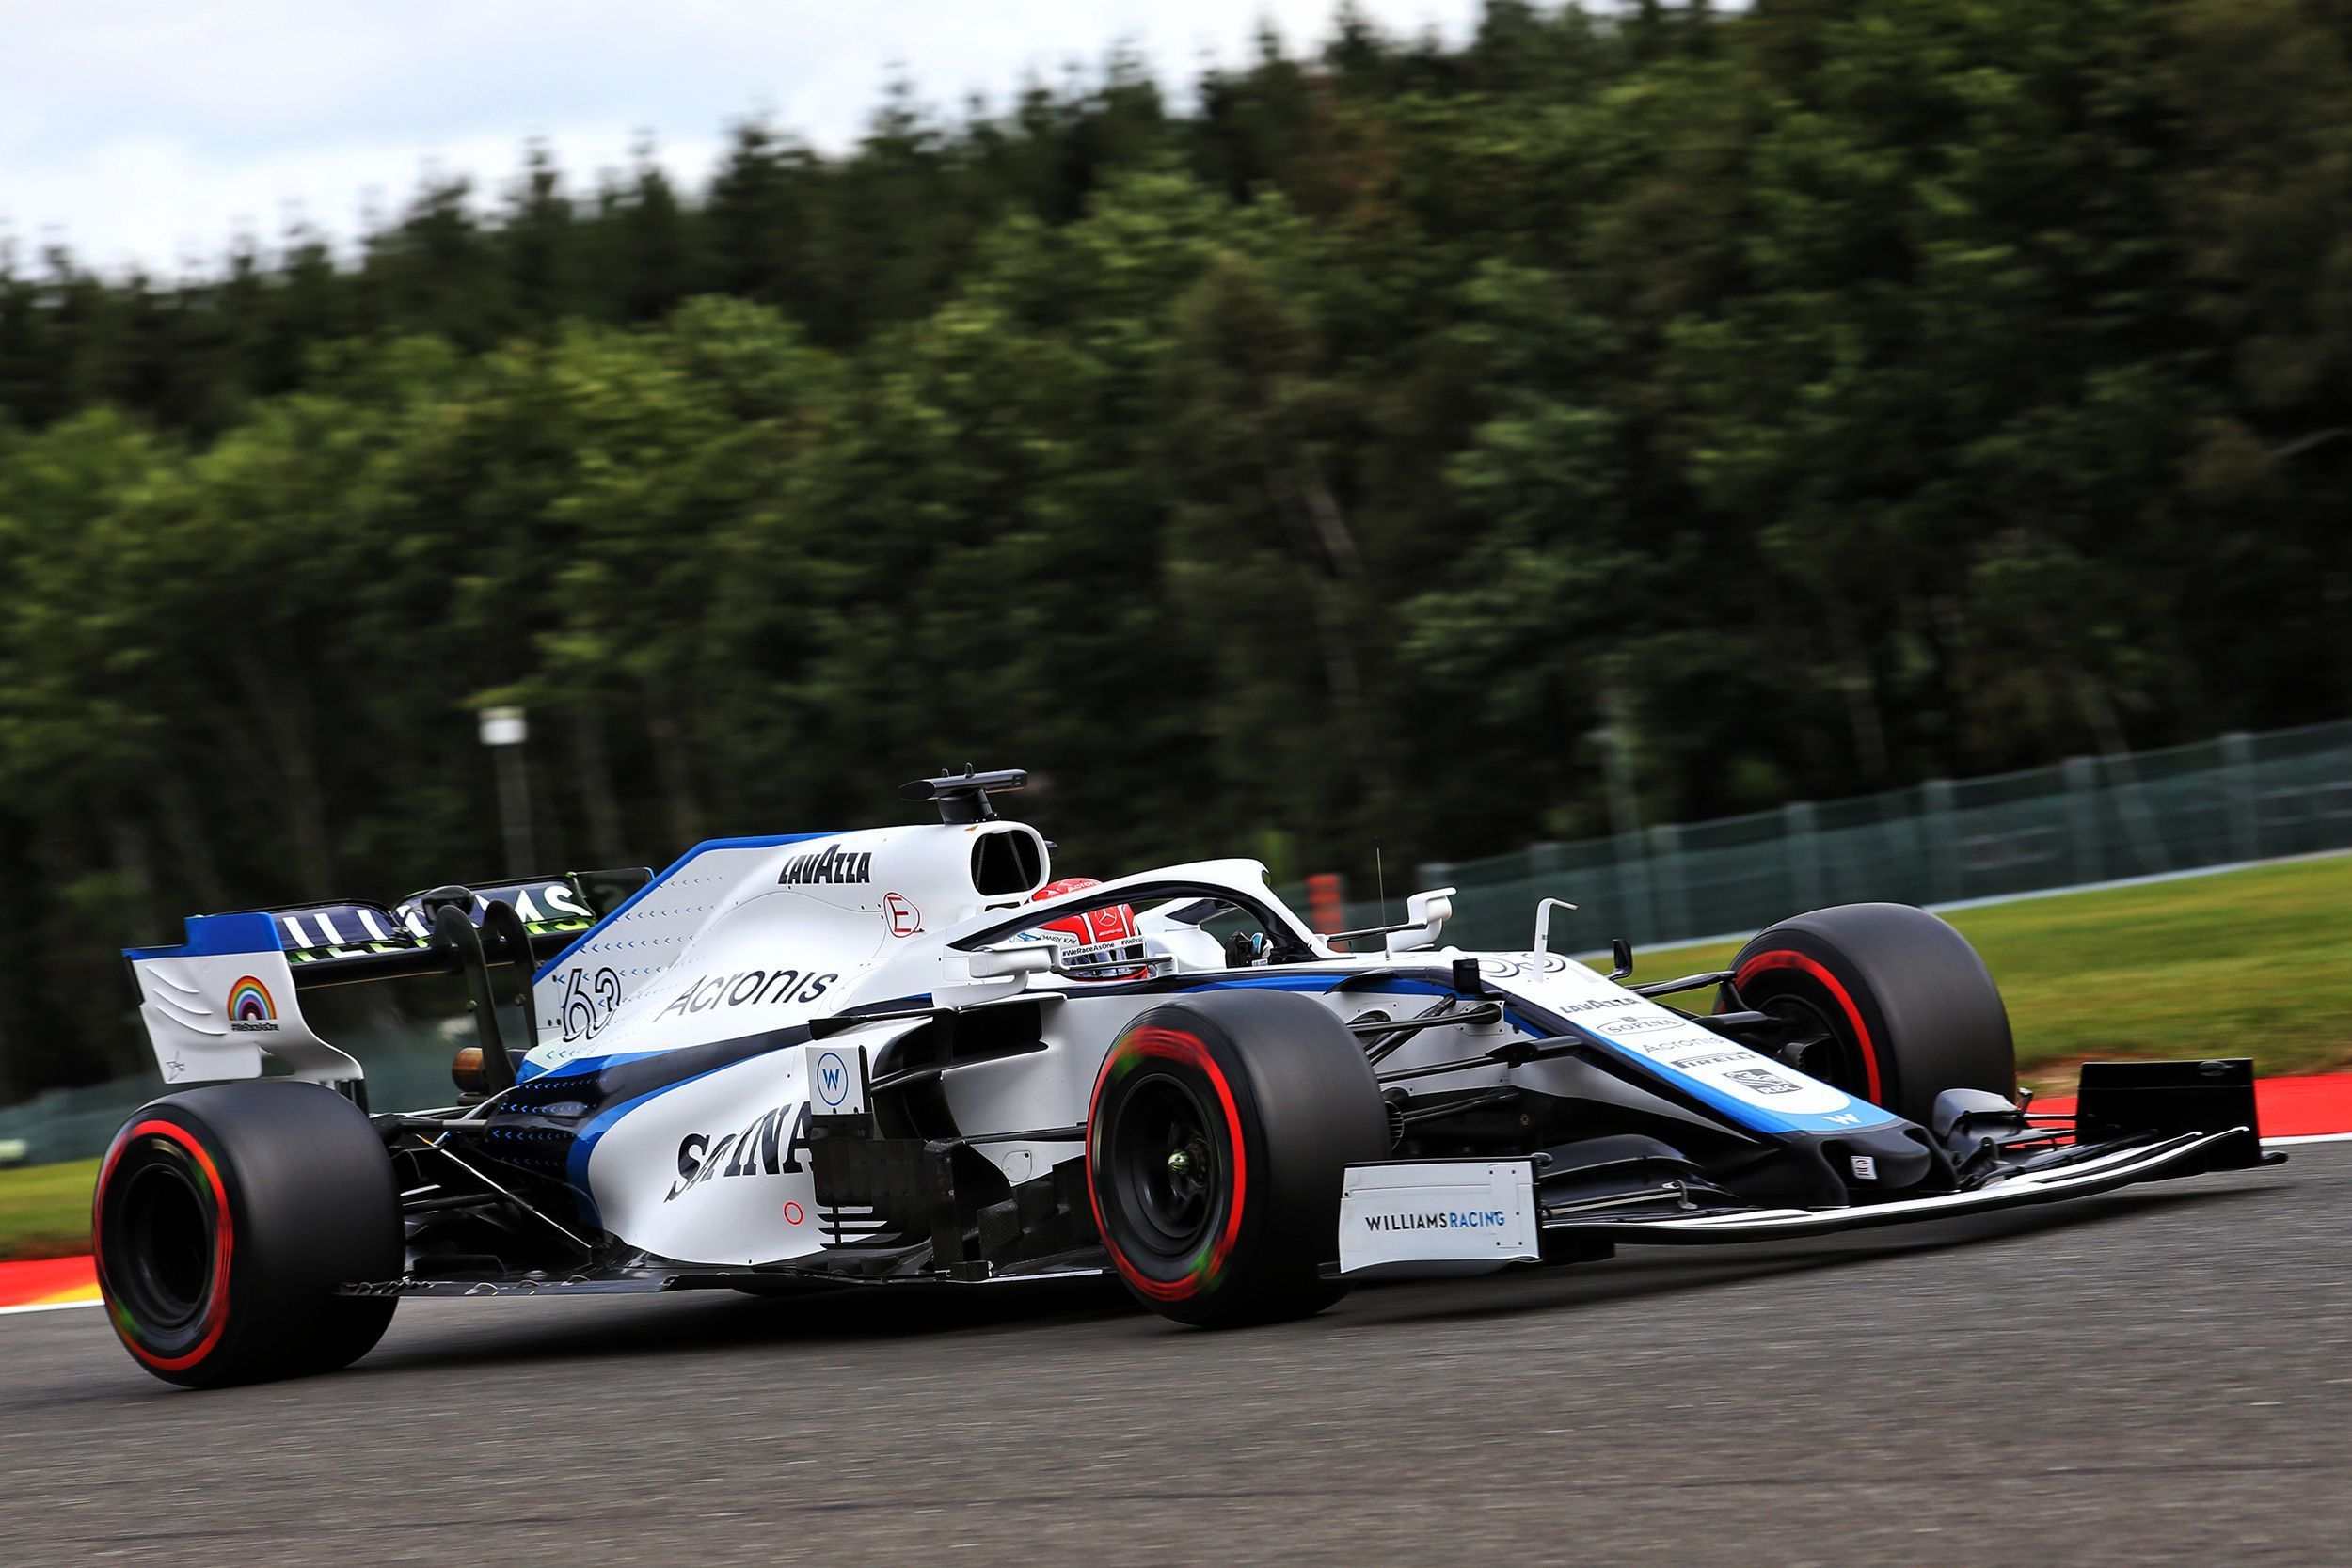 Williams, F1, Claire Williams, George Russell, Nicholas Latifi